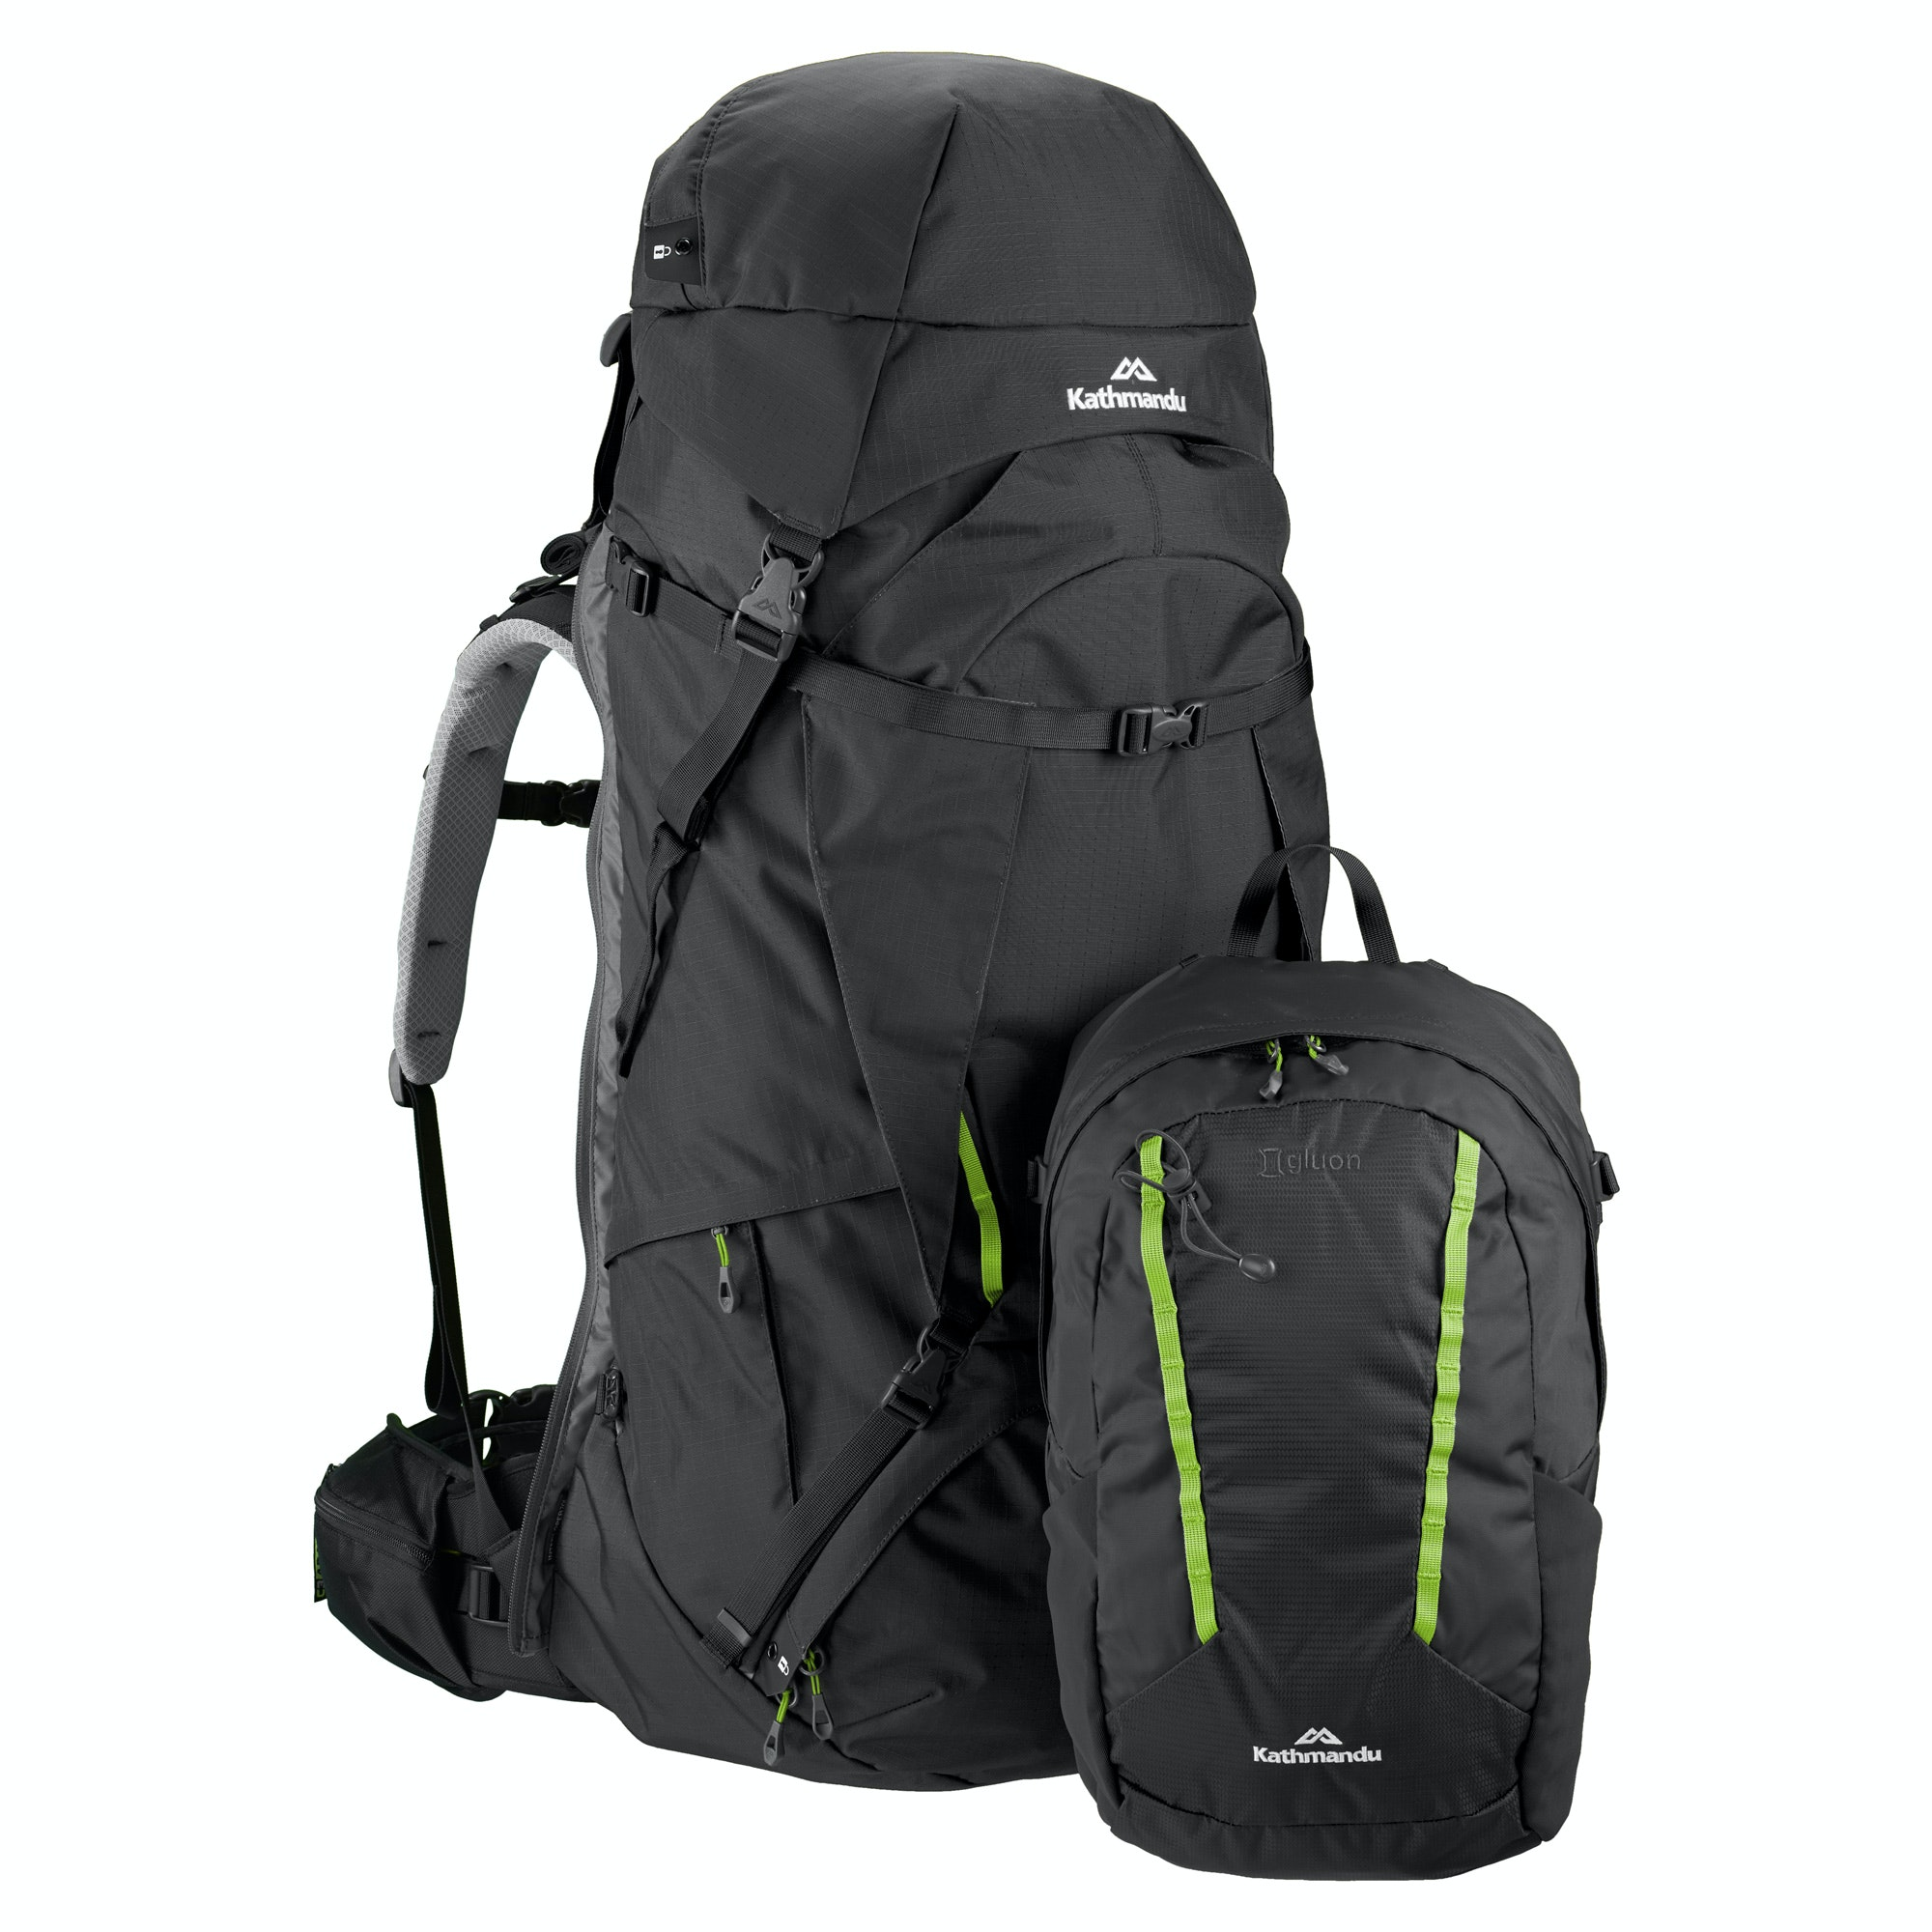 NEW-Kathmandu-Interloper-gridTECH-70L-Hiking-Travel-Backpack-Luggage-with thumbnail 8